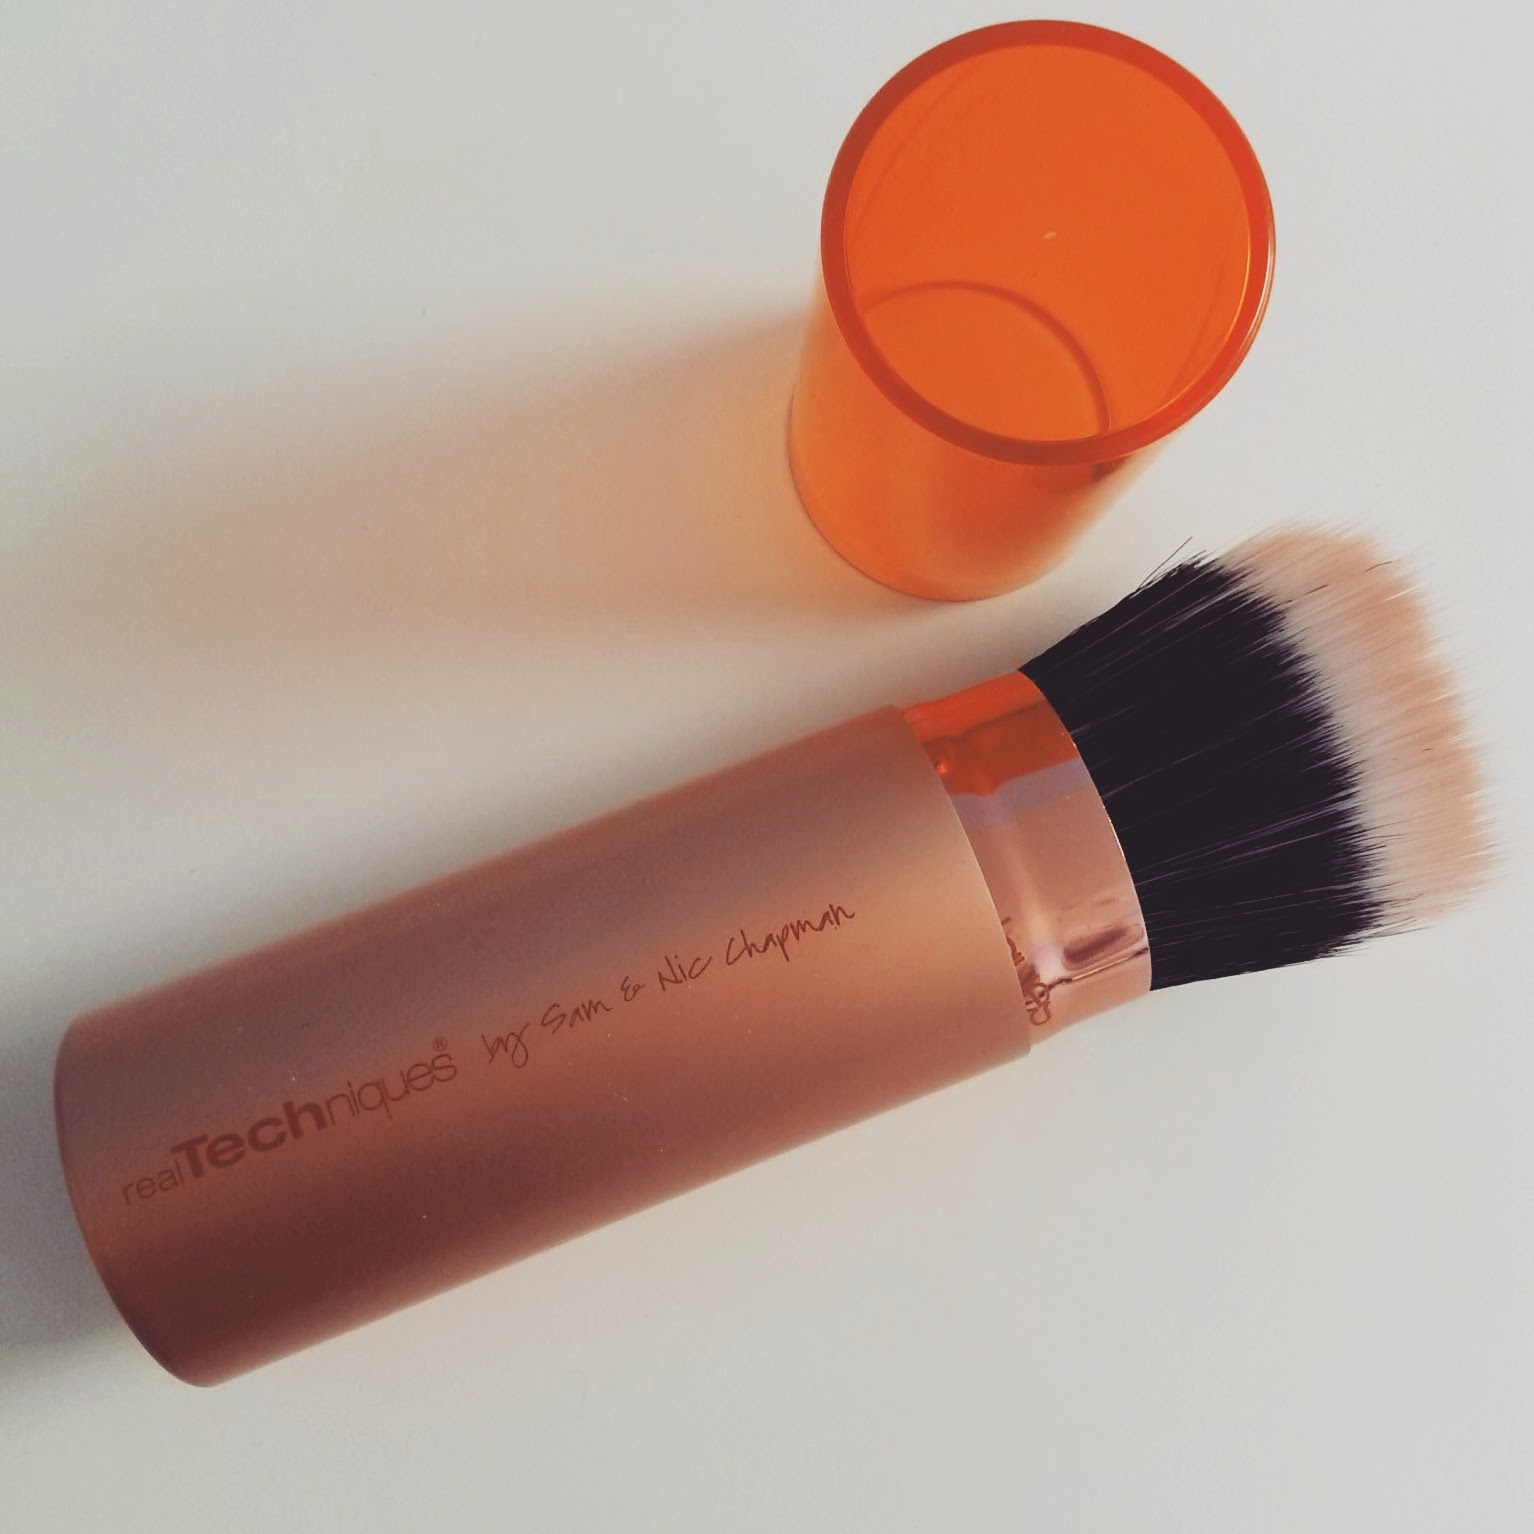 beauty makeup regrets 2015 - real techniques bronzing brush